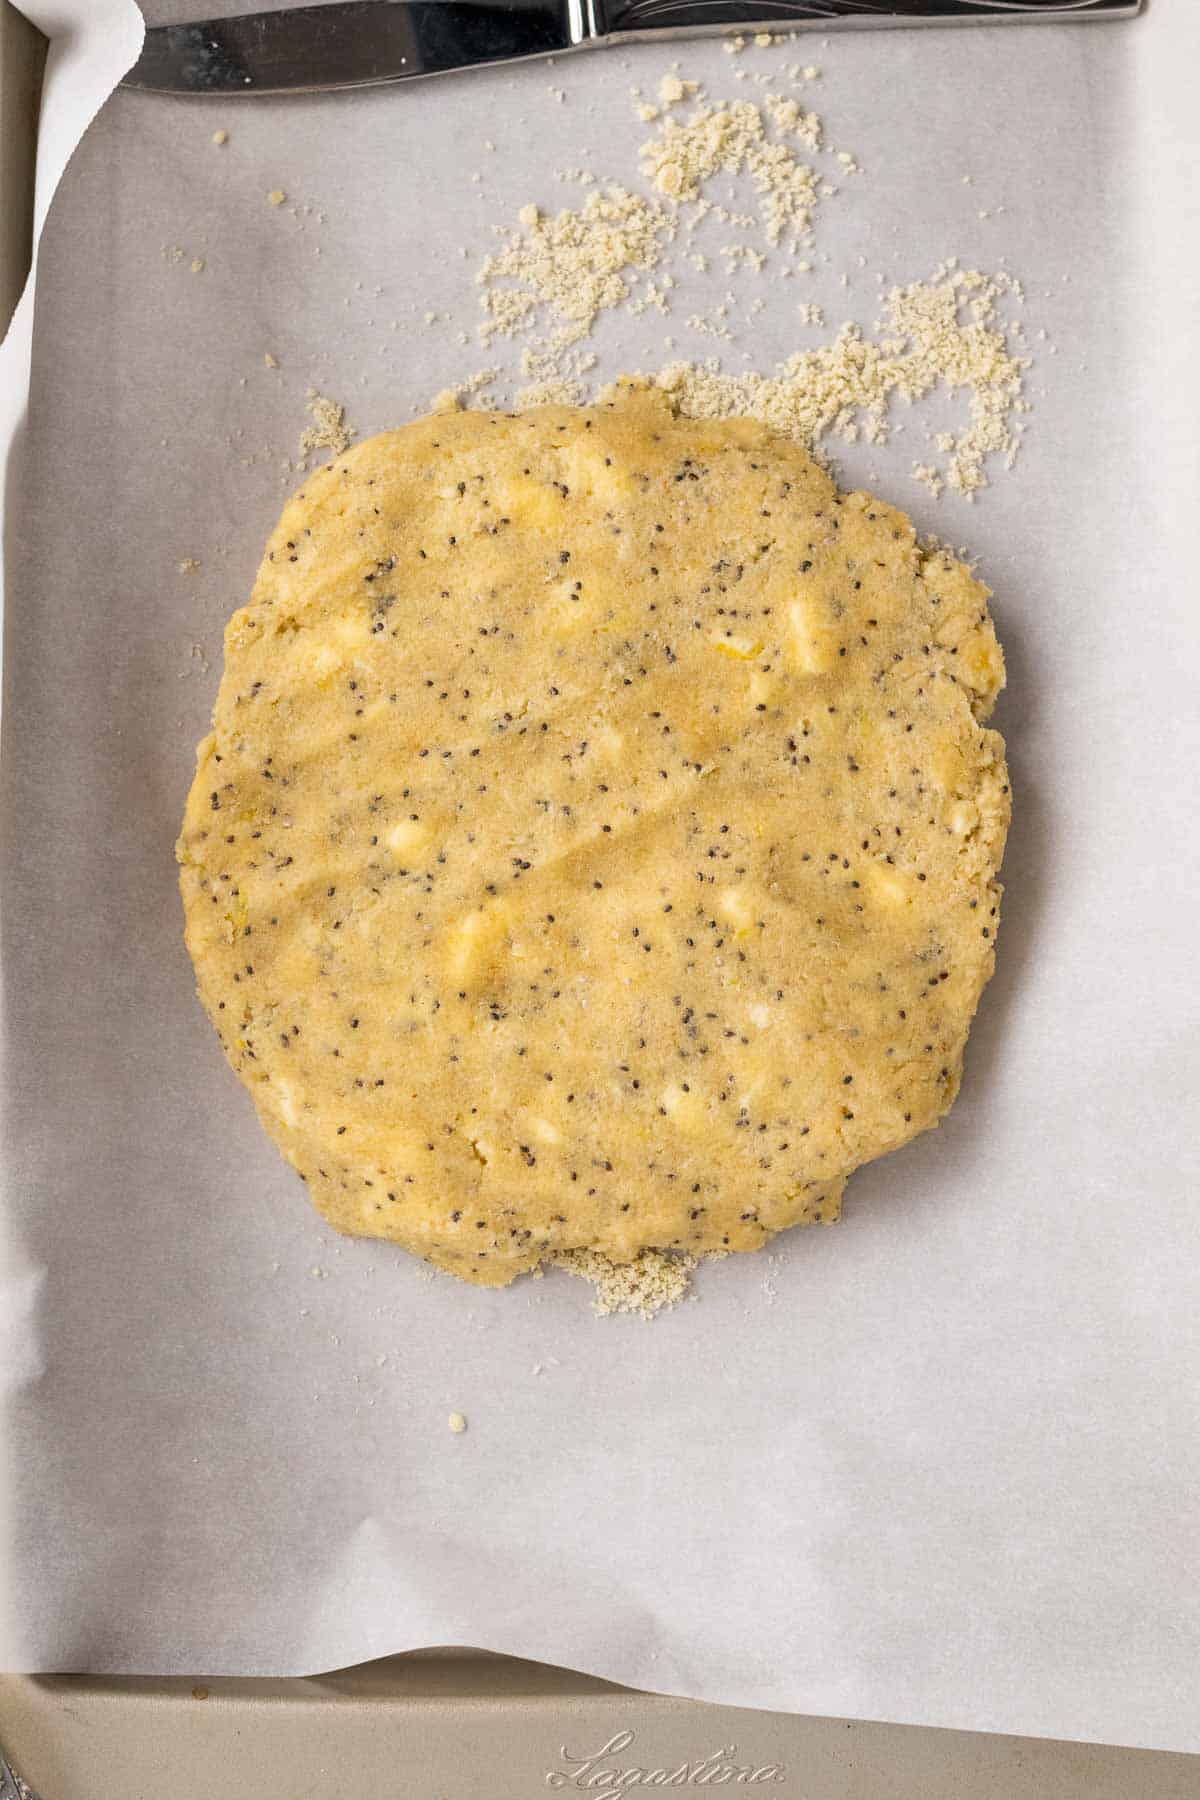 Scone dough flattened into a circle on a baking sheet lined with parchment paper